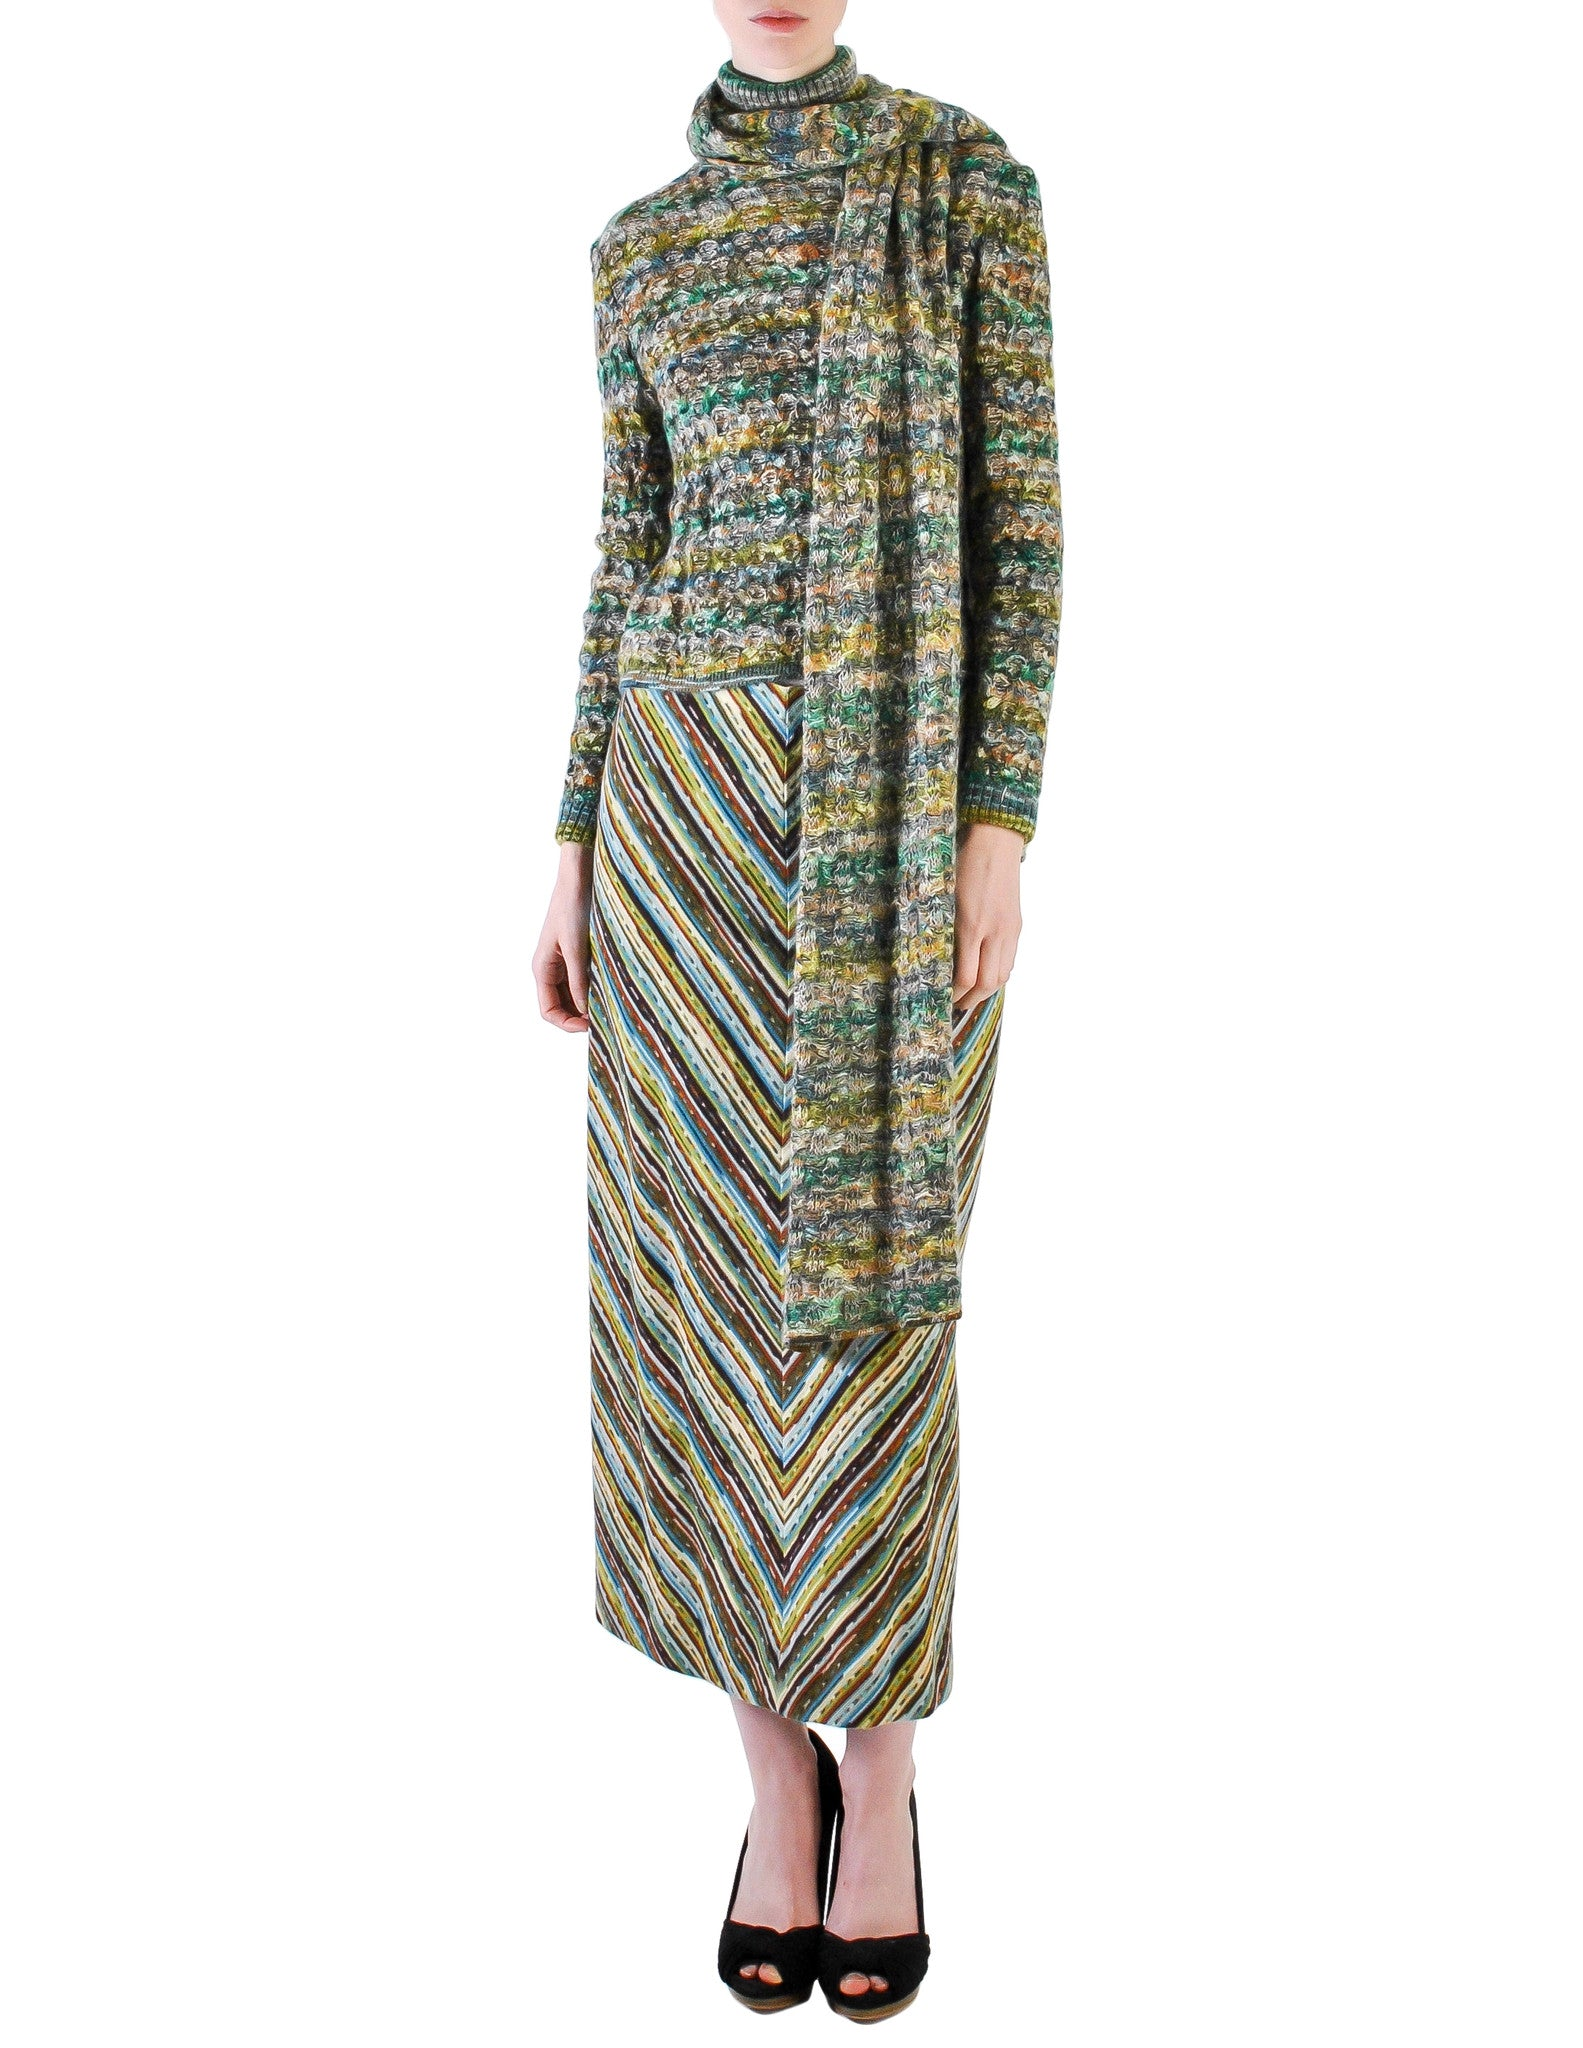 3d7e9fea8fe Missoni Vintage Green Patterned Knit Sweater, Scarf and Skirt Ensemble Set